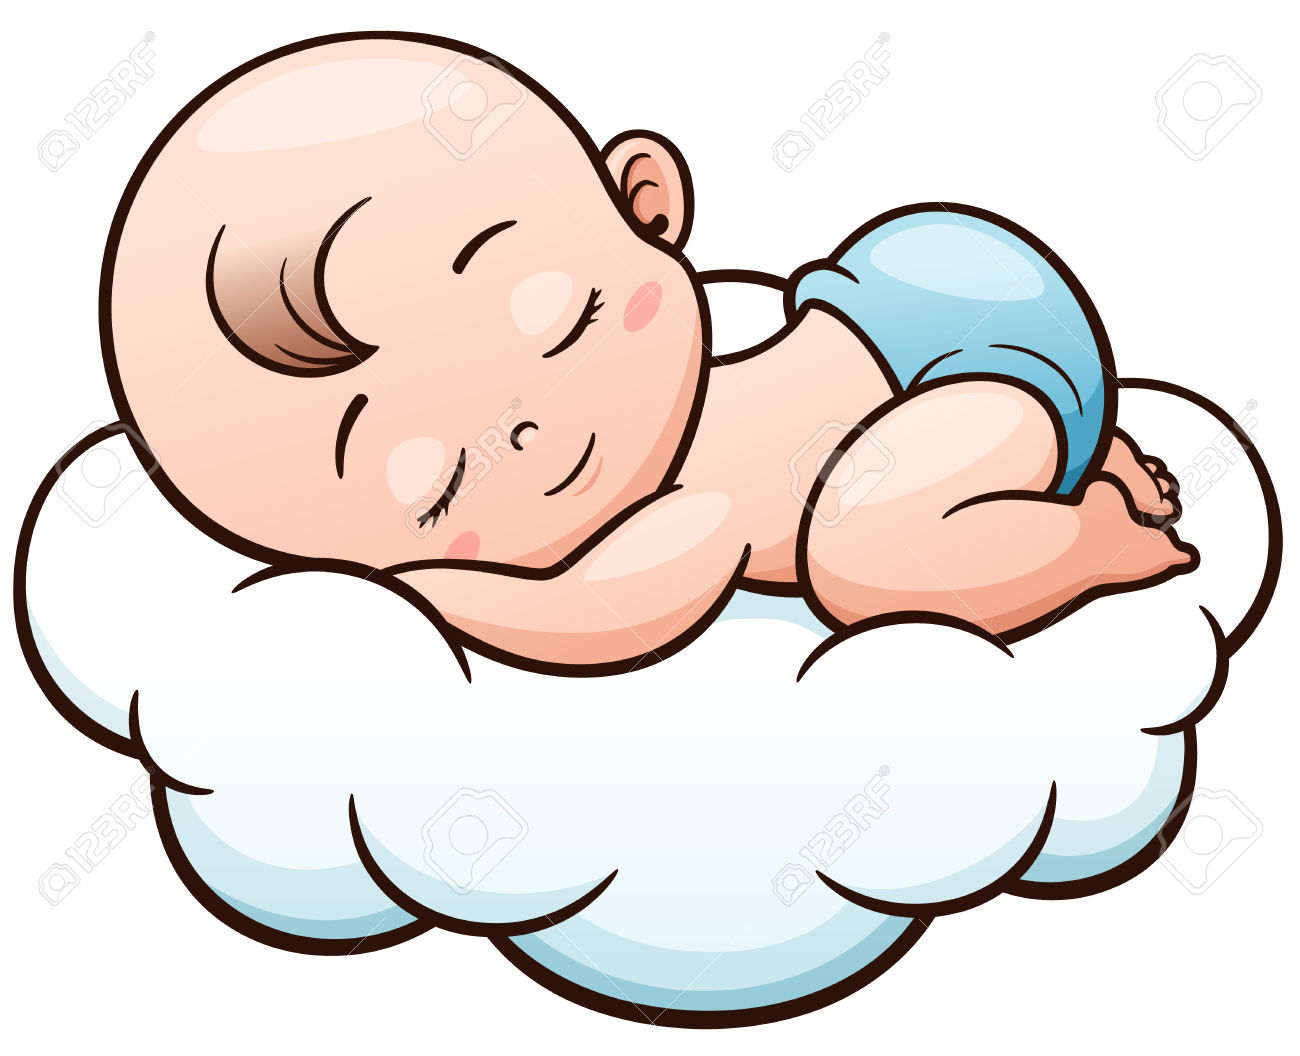 Baby clipart svg freeuse library Baby Sleeping Clipart | Free download best Baby Sleeping Clipart on ... svg freeuse library